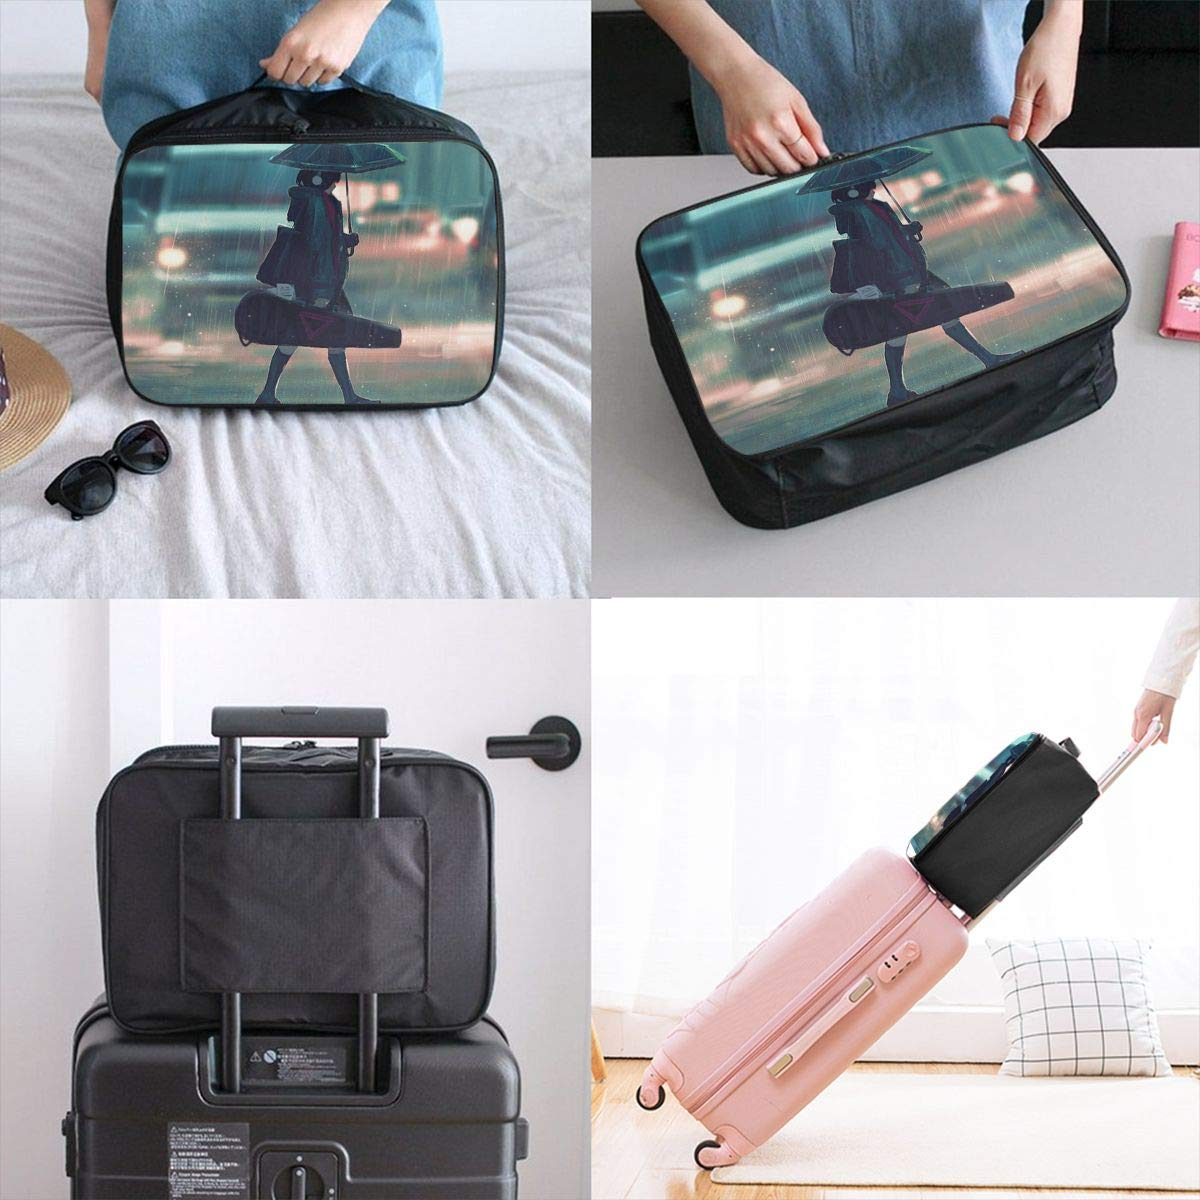 Girl Headphones Umbrella Carrying Musical Instrument Cat Customize Casual Portable Travel Bag Suitcase Storage Bag Luggage Packing Tote Bag Trolley Bag